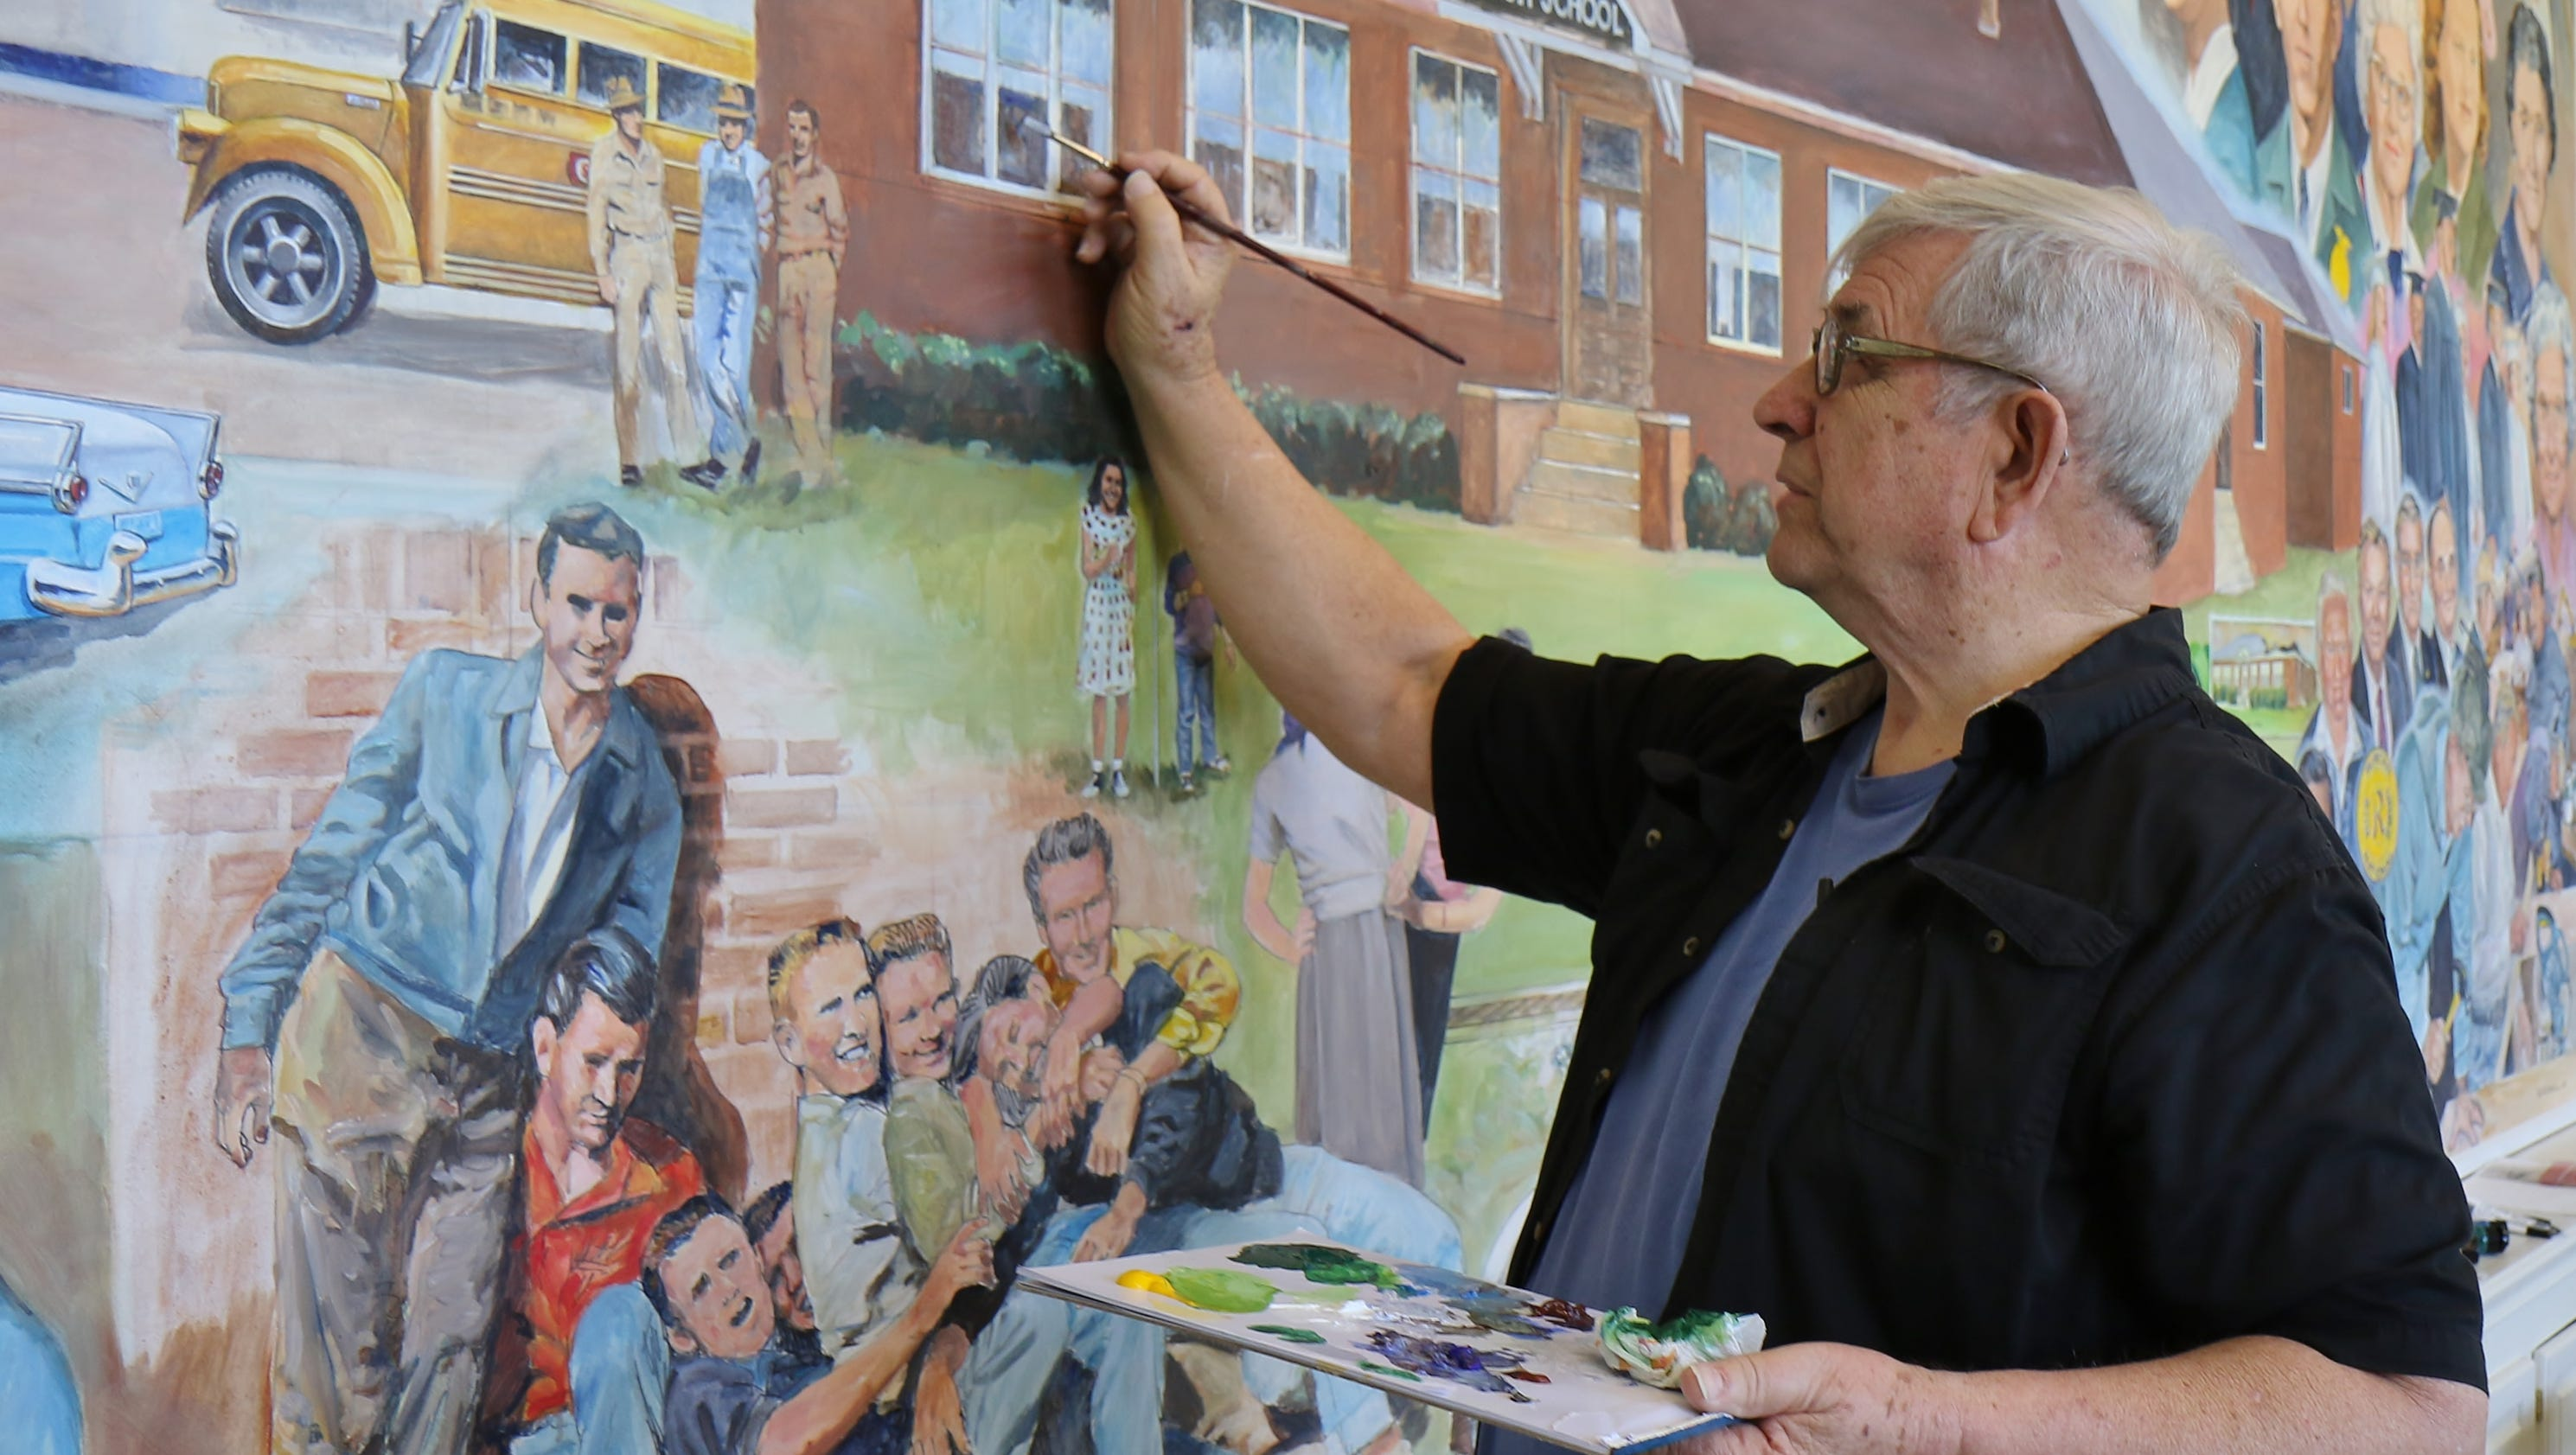 Pinson artist creates commemorative murals for Jackson 5 mural